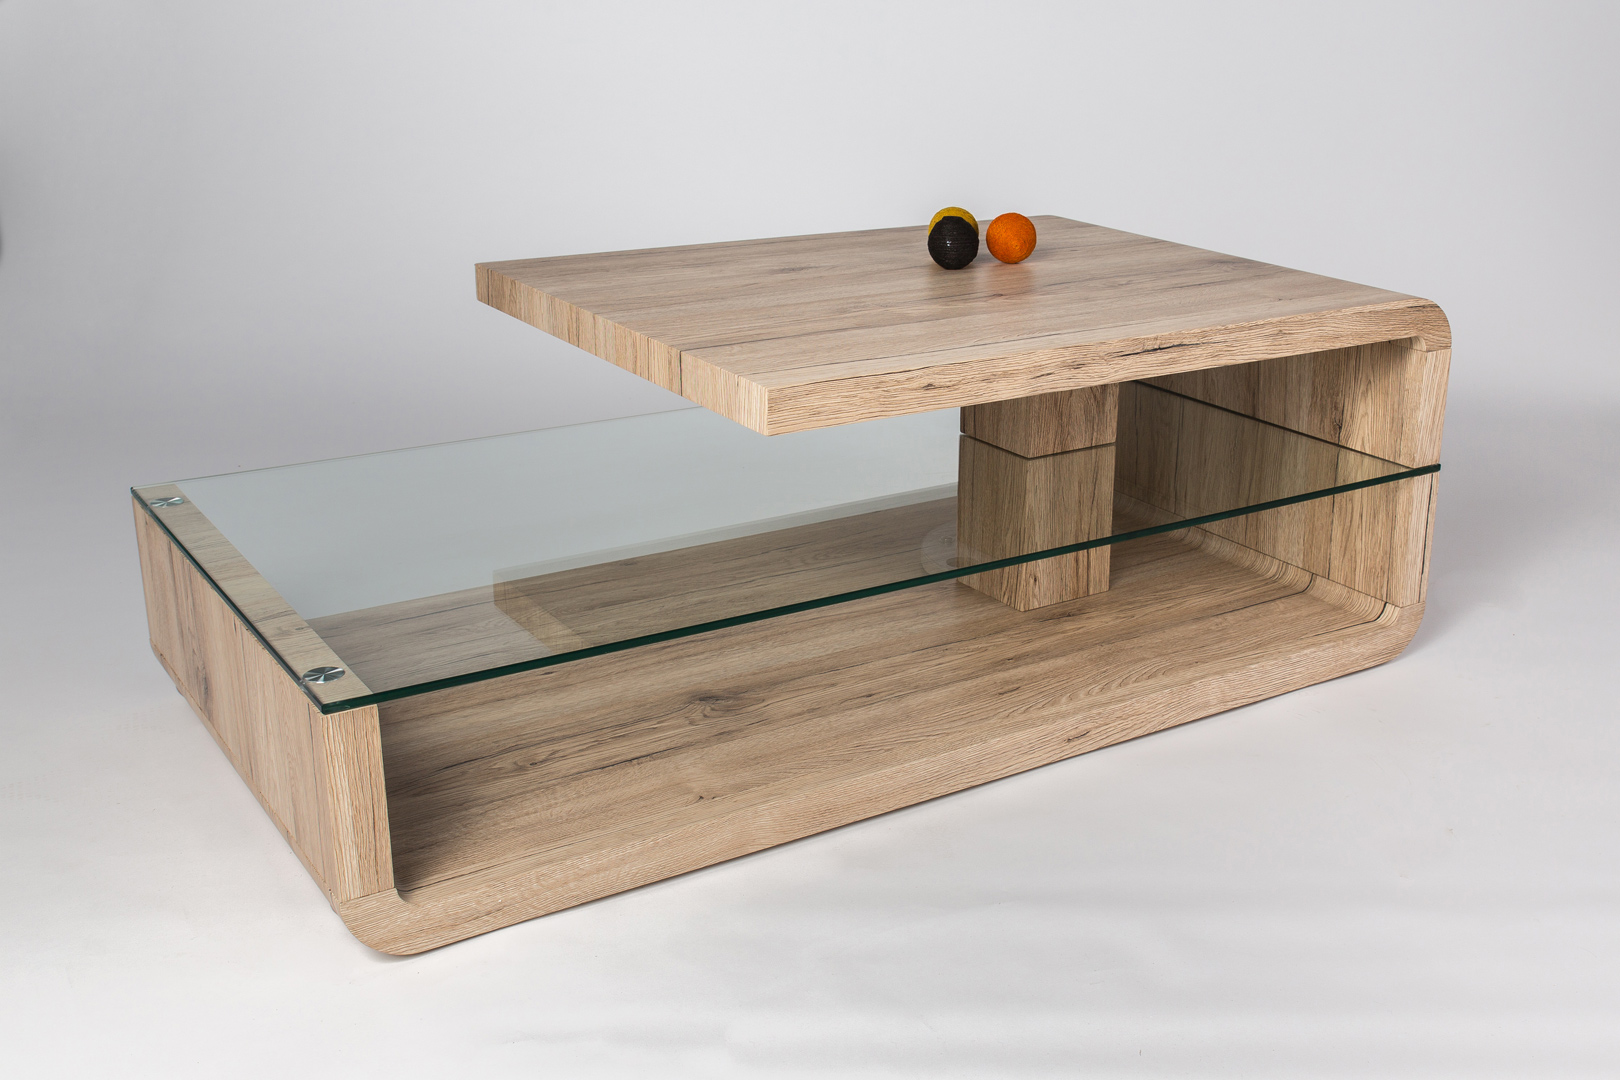 Table Basse Design Bois.Table Basse Design Bois Et Verre Chene Sable Galati